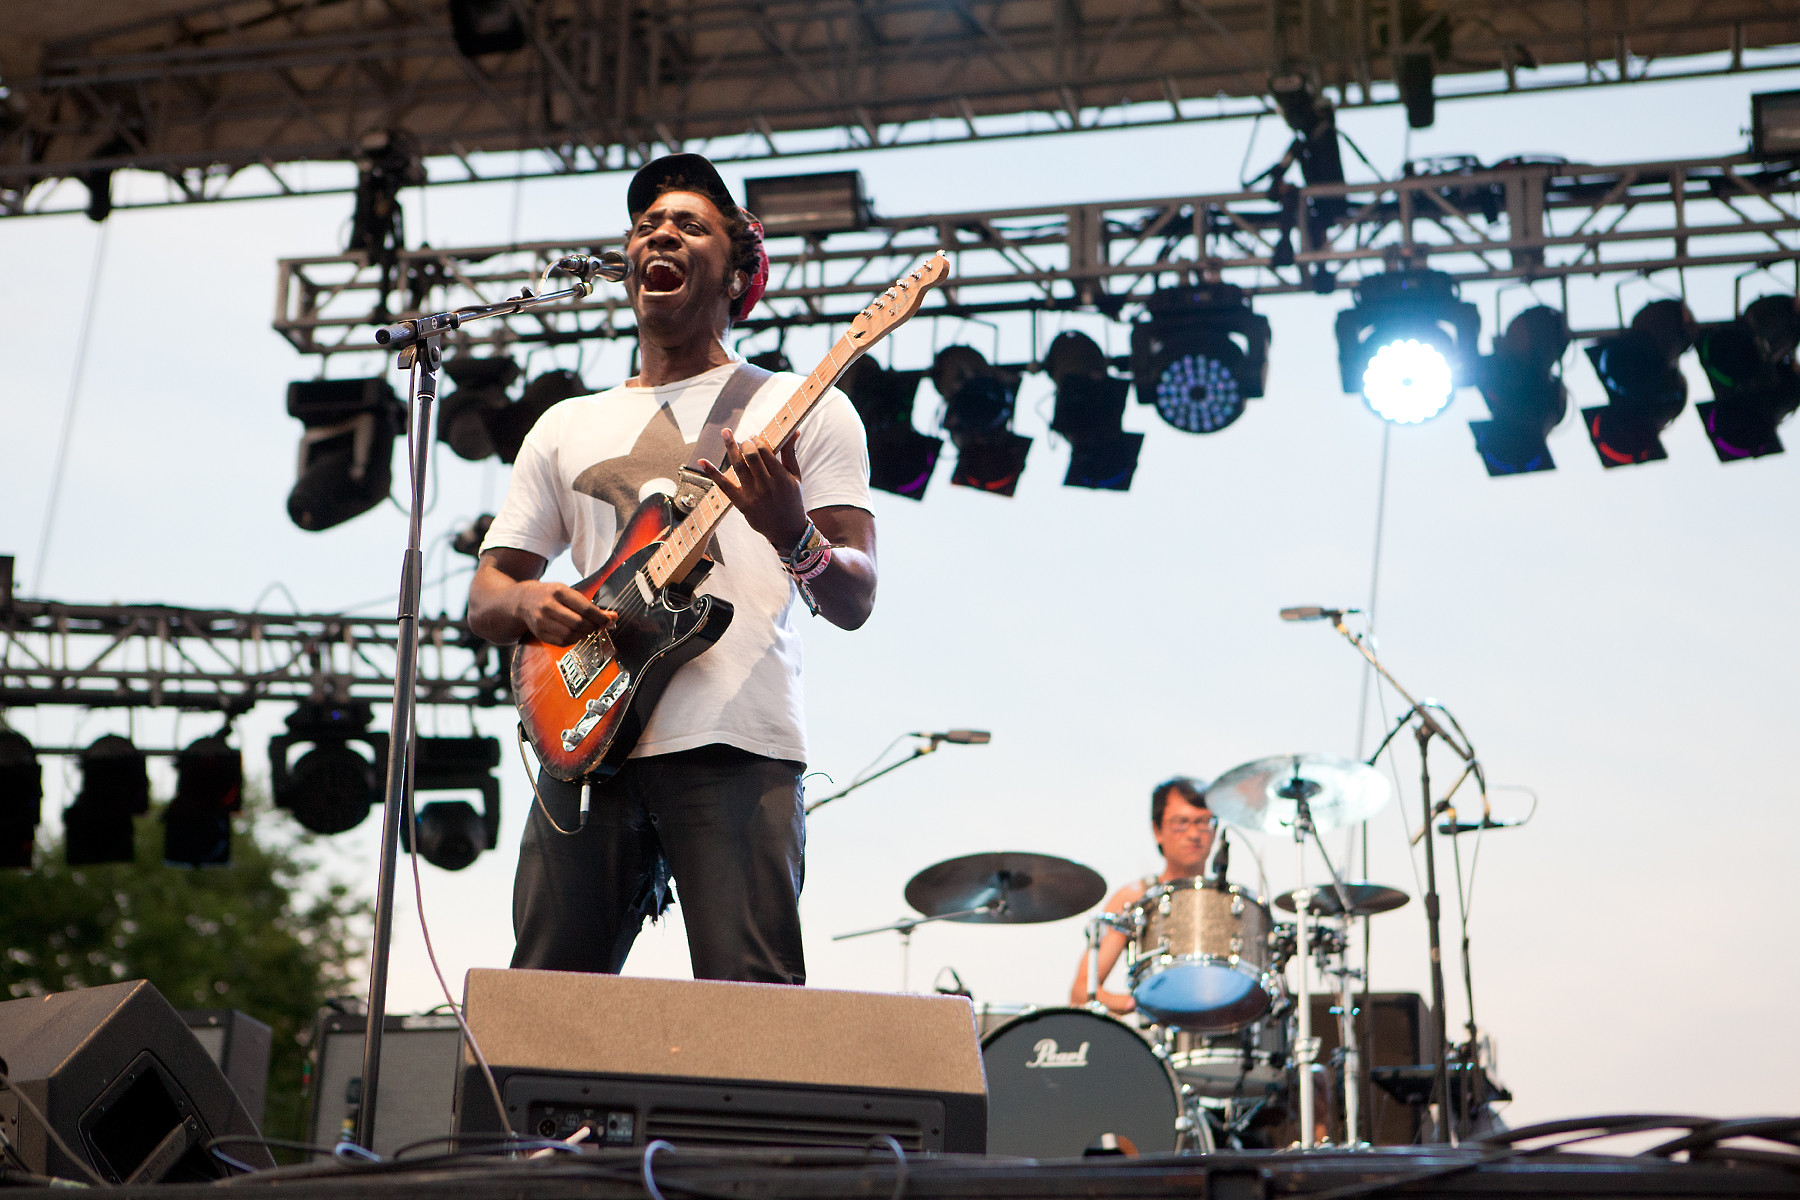 Bloc Party @ Lollapalooza 2012